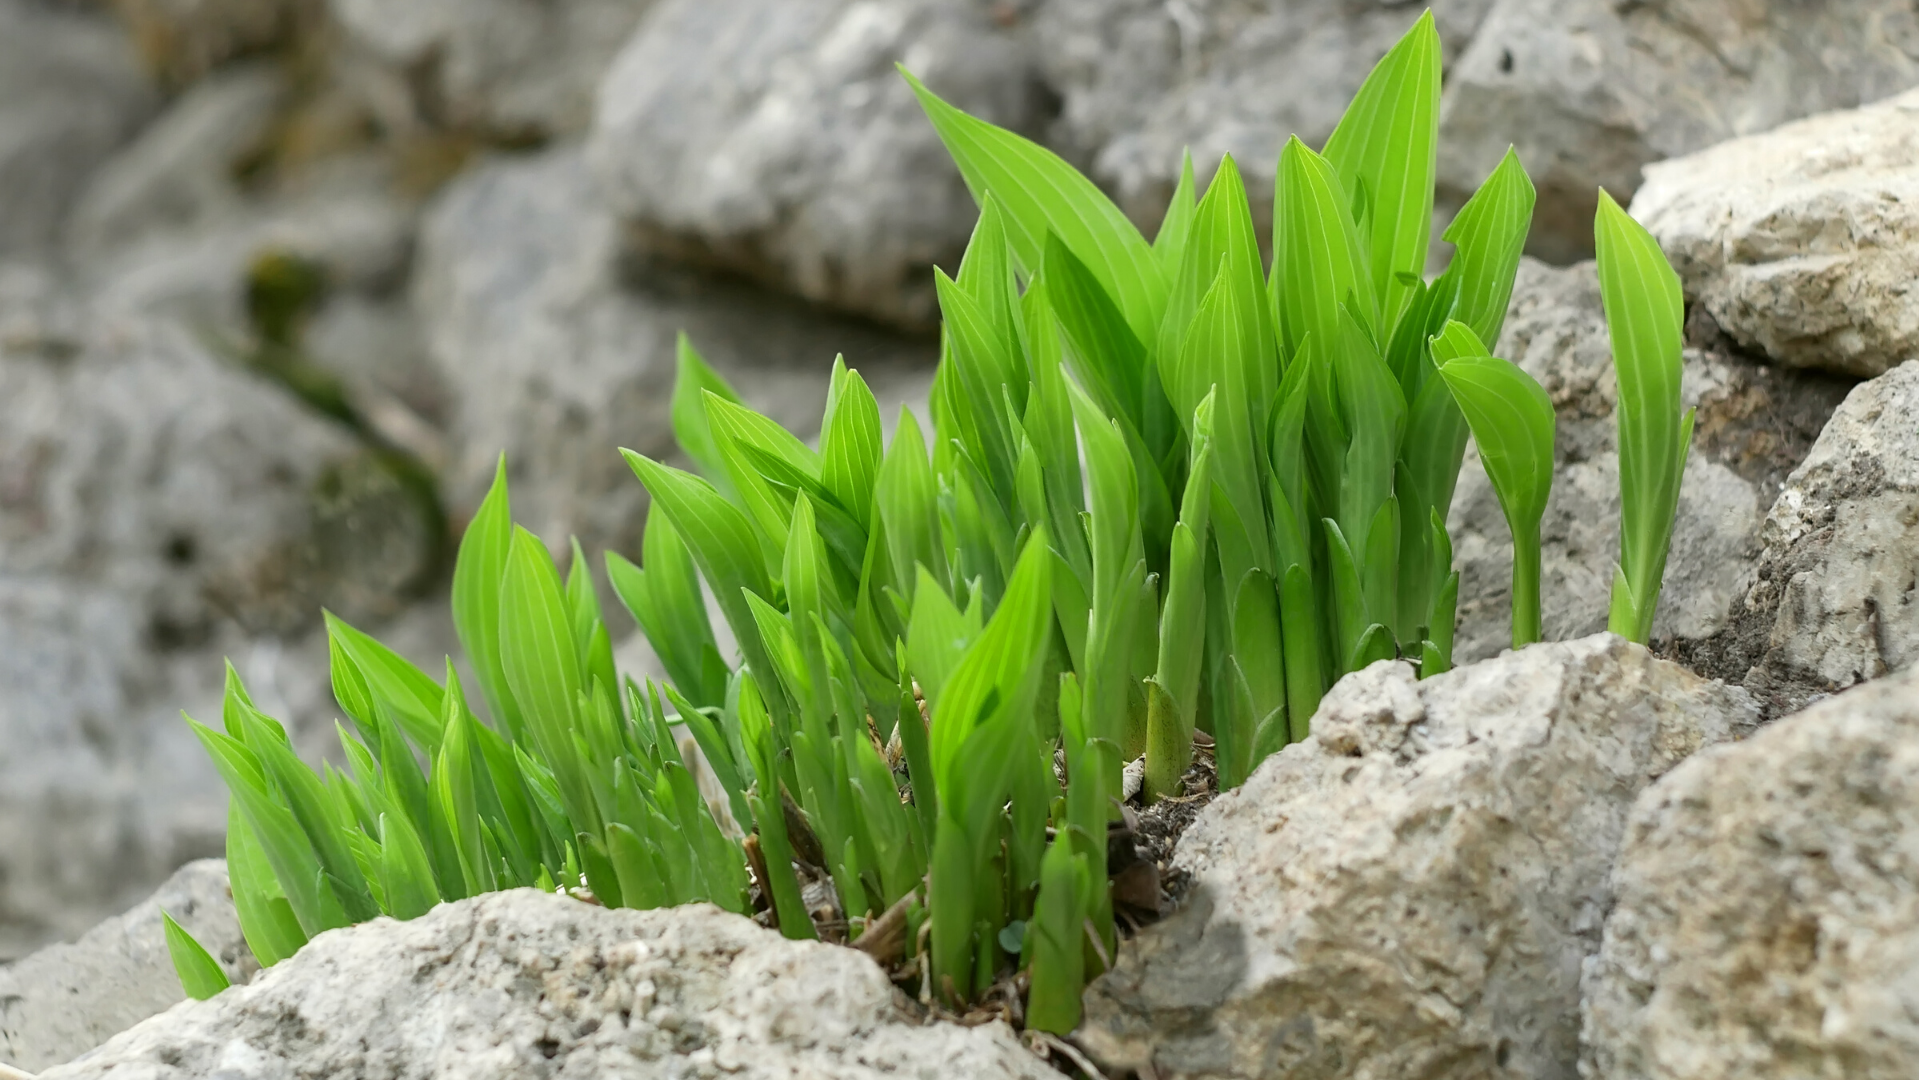 Green plant growing among rocks